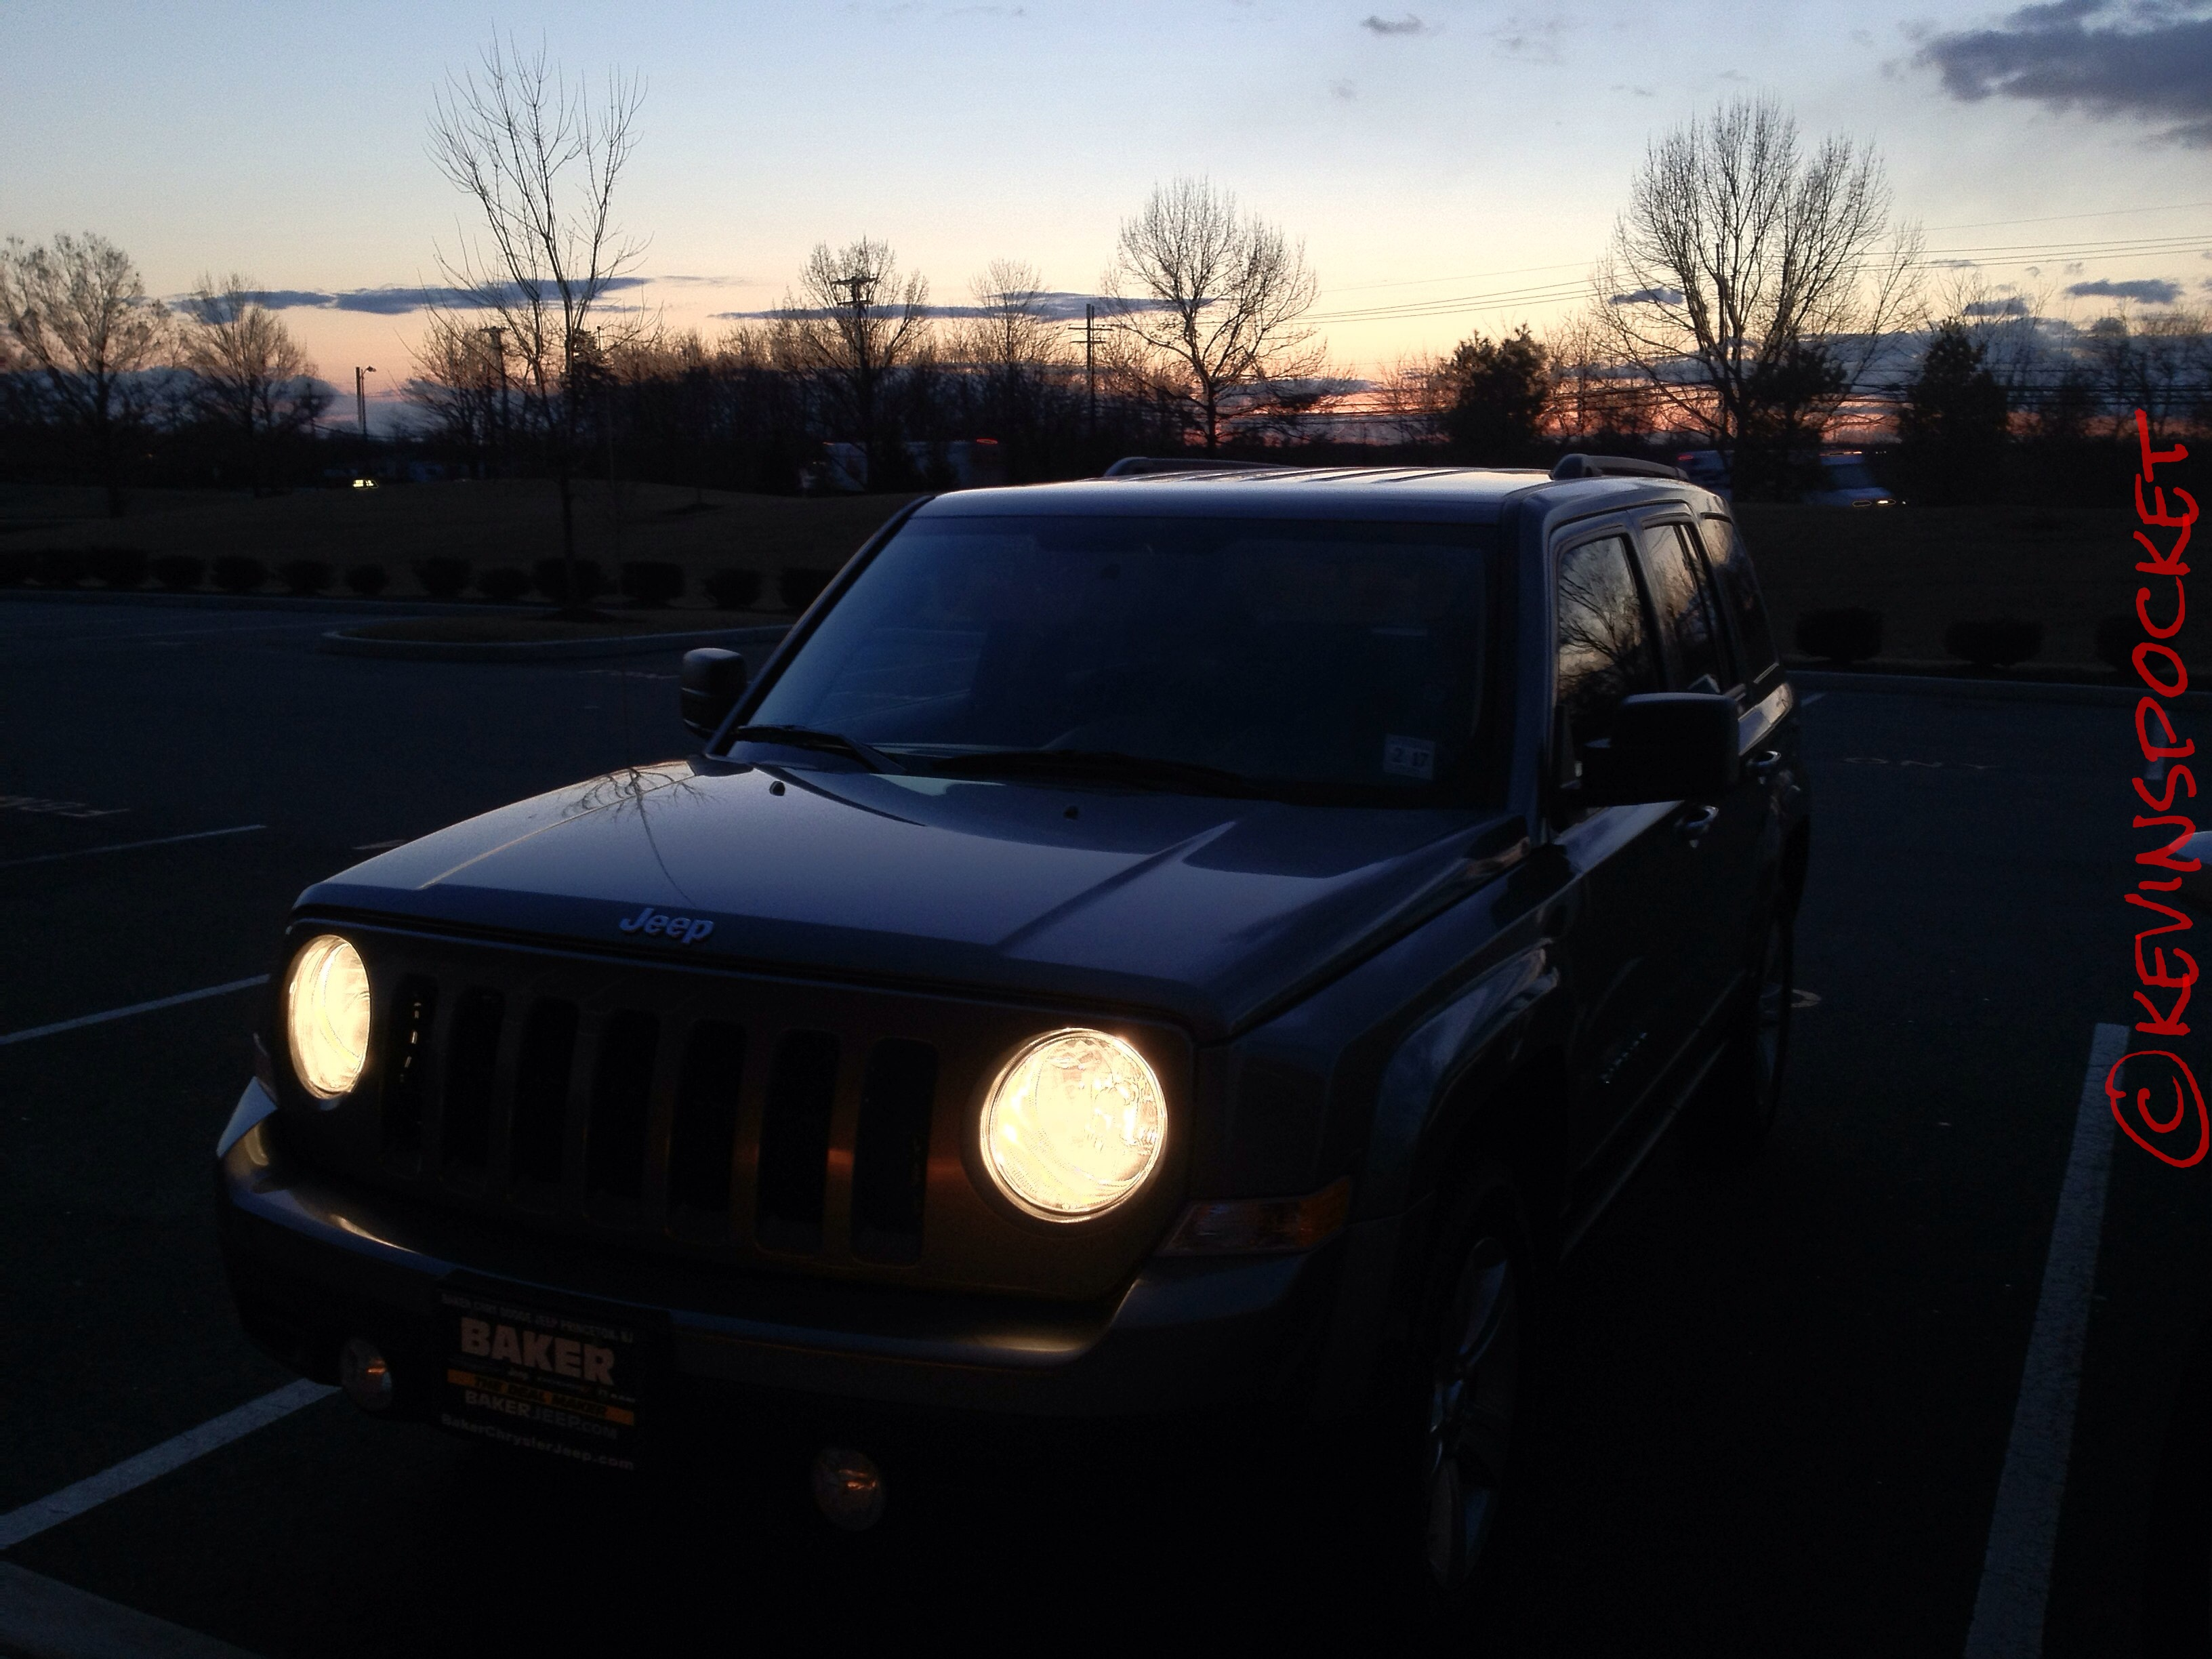 Brand Loyalty and my 2012 Jeep Patriot – kevinspocket